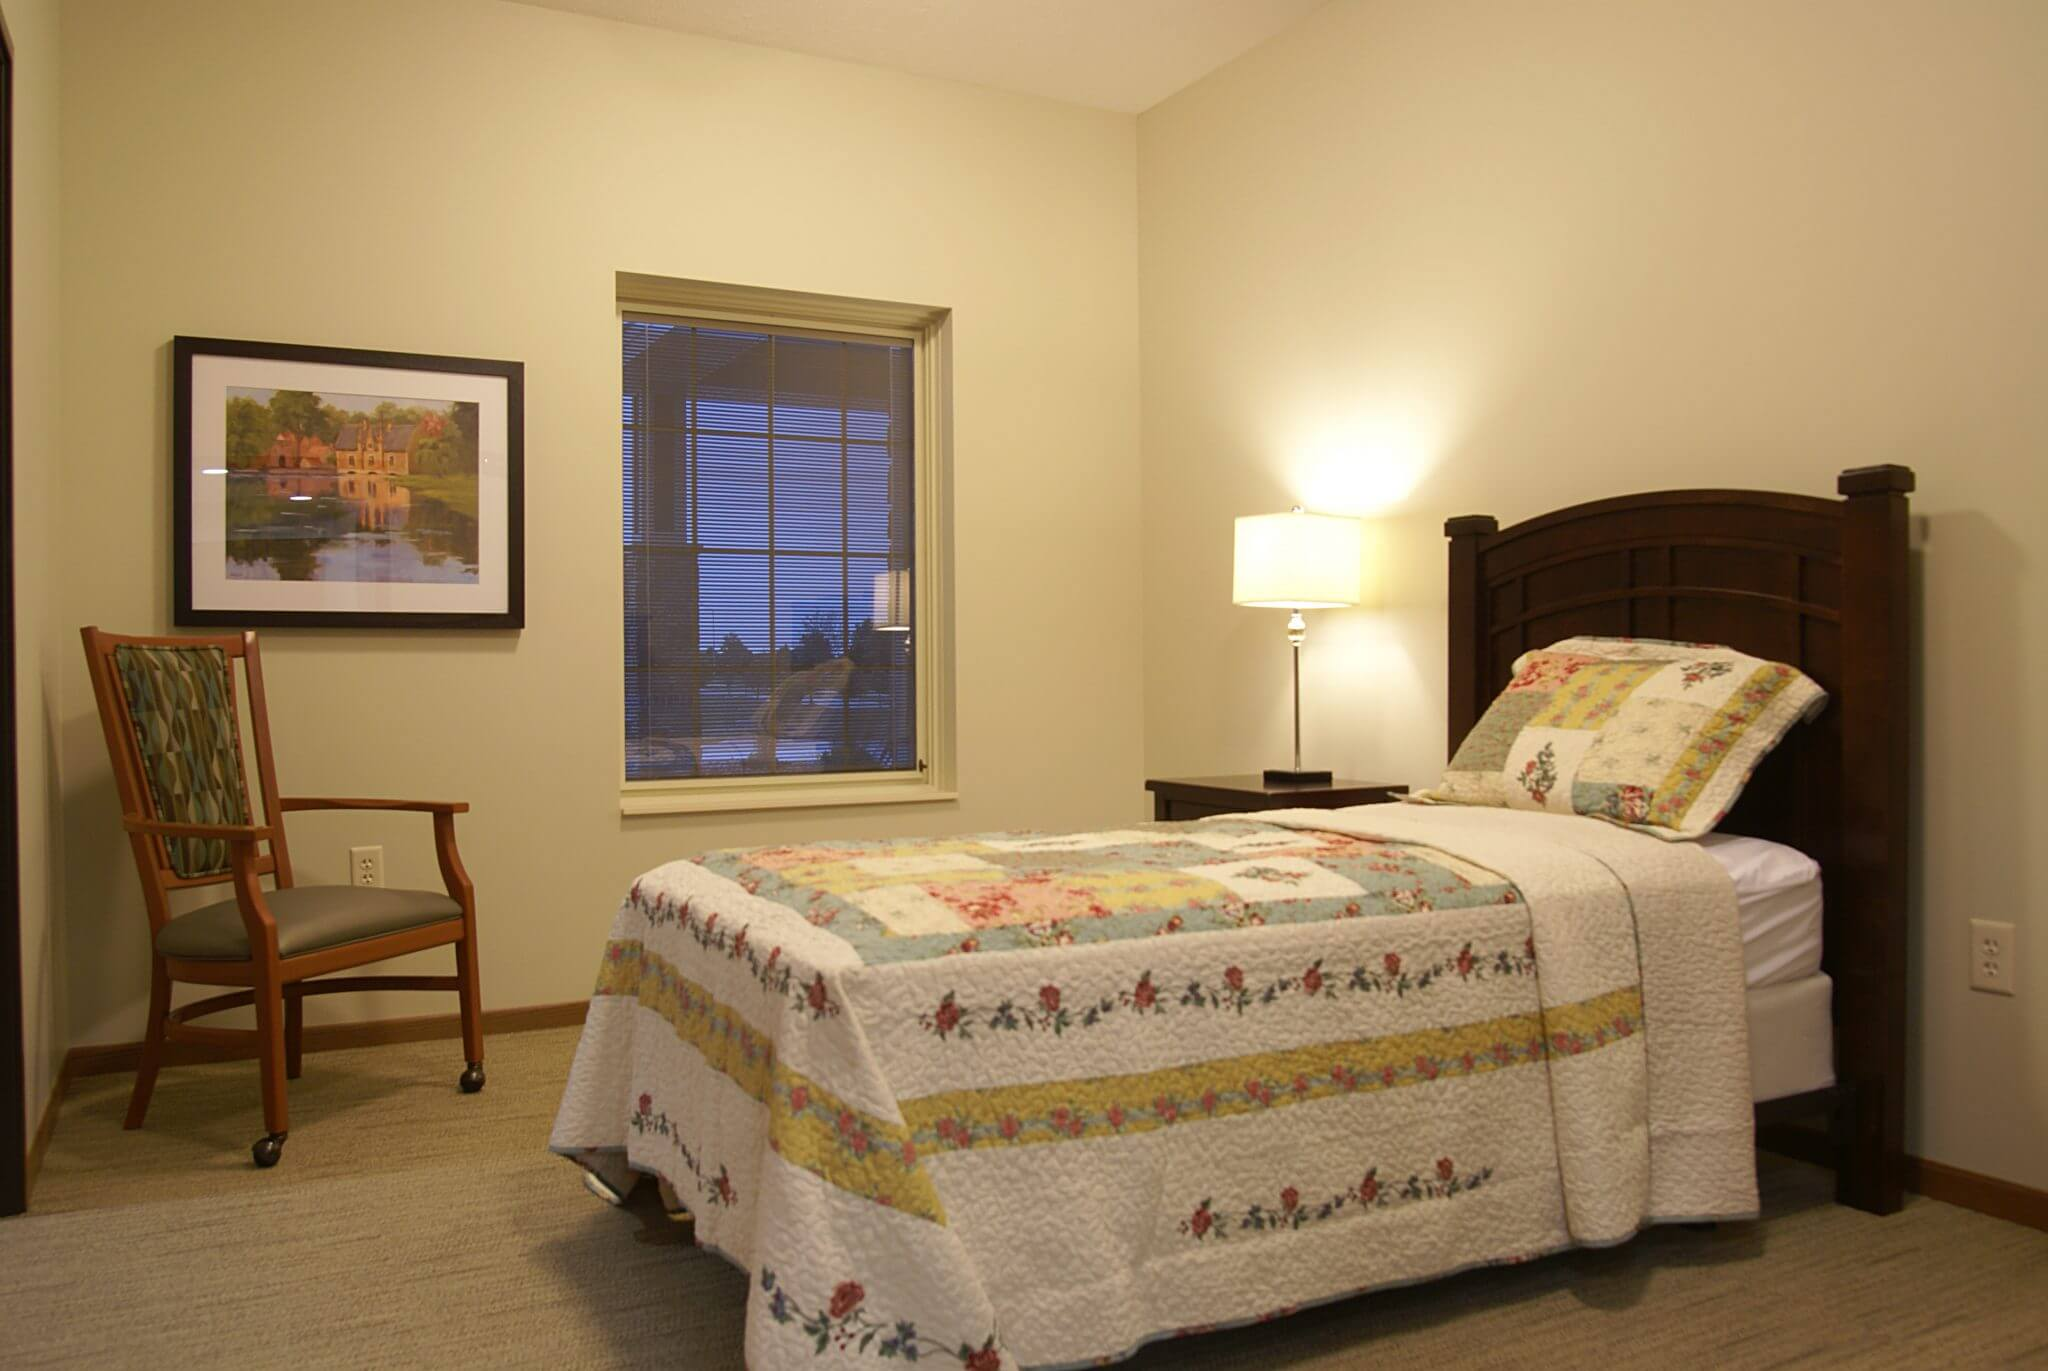 interior shot of bedroom with quilt on bed